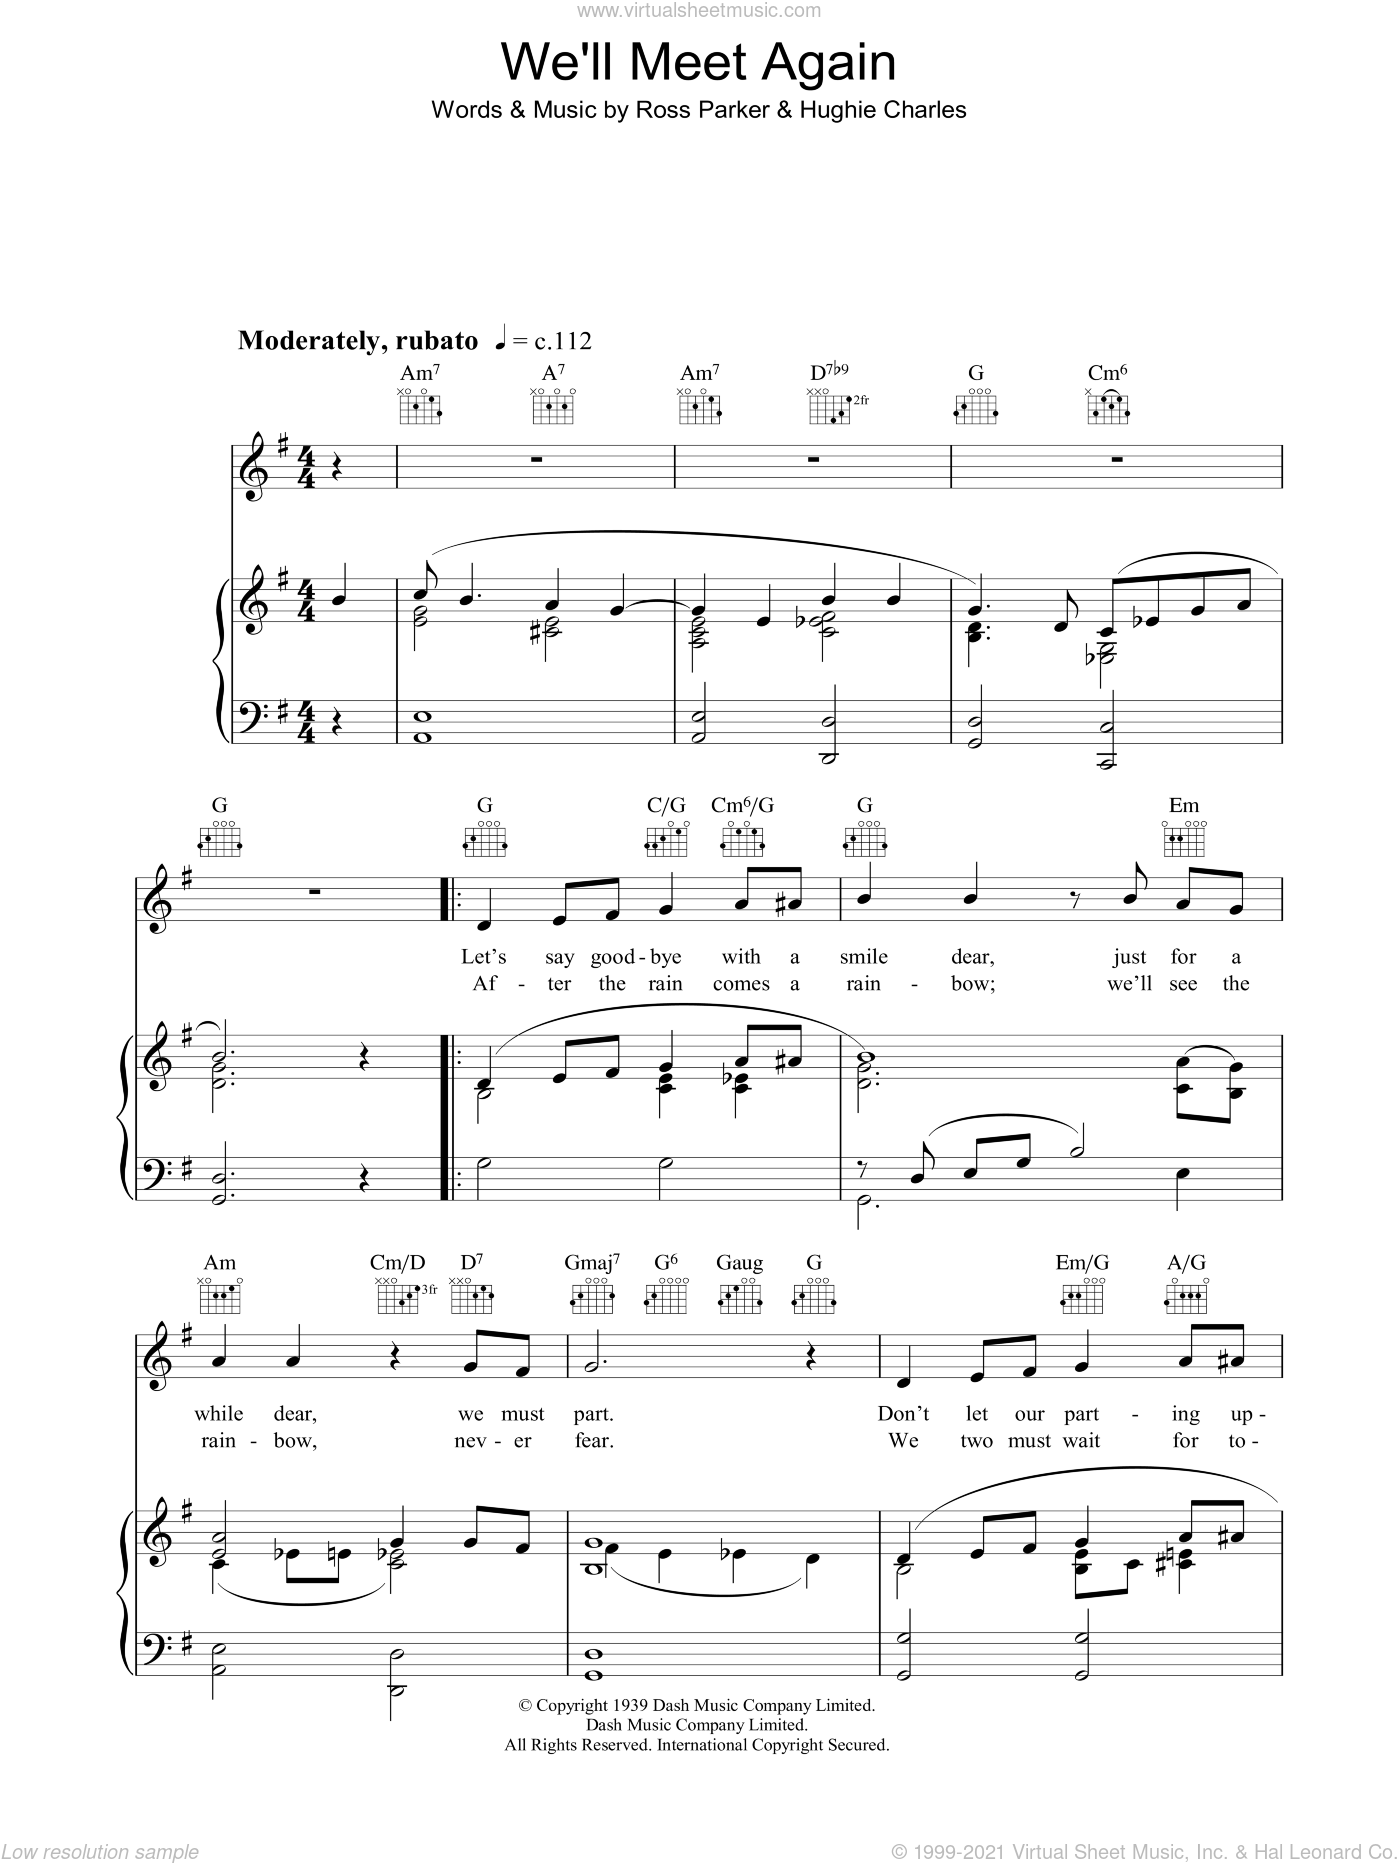 We'll Meet Again sheet music for voice, piano or guitar by Katherine Jenkins, Hughie Charles and Ross Parker, classical score, intermediate. Score Image Preview.